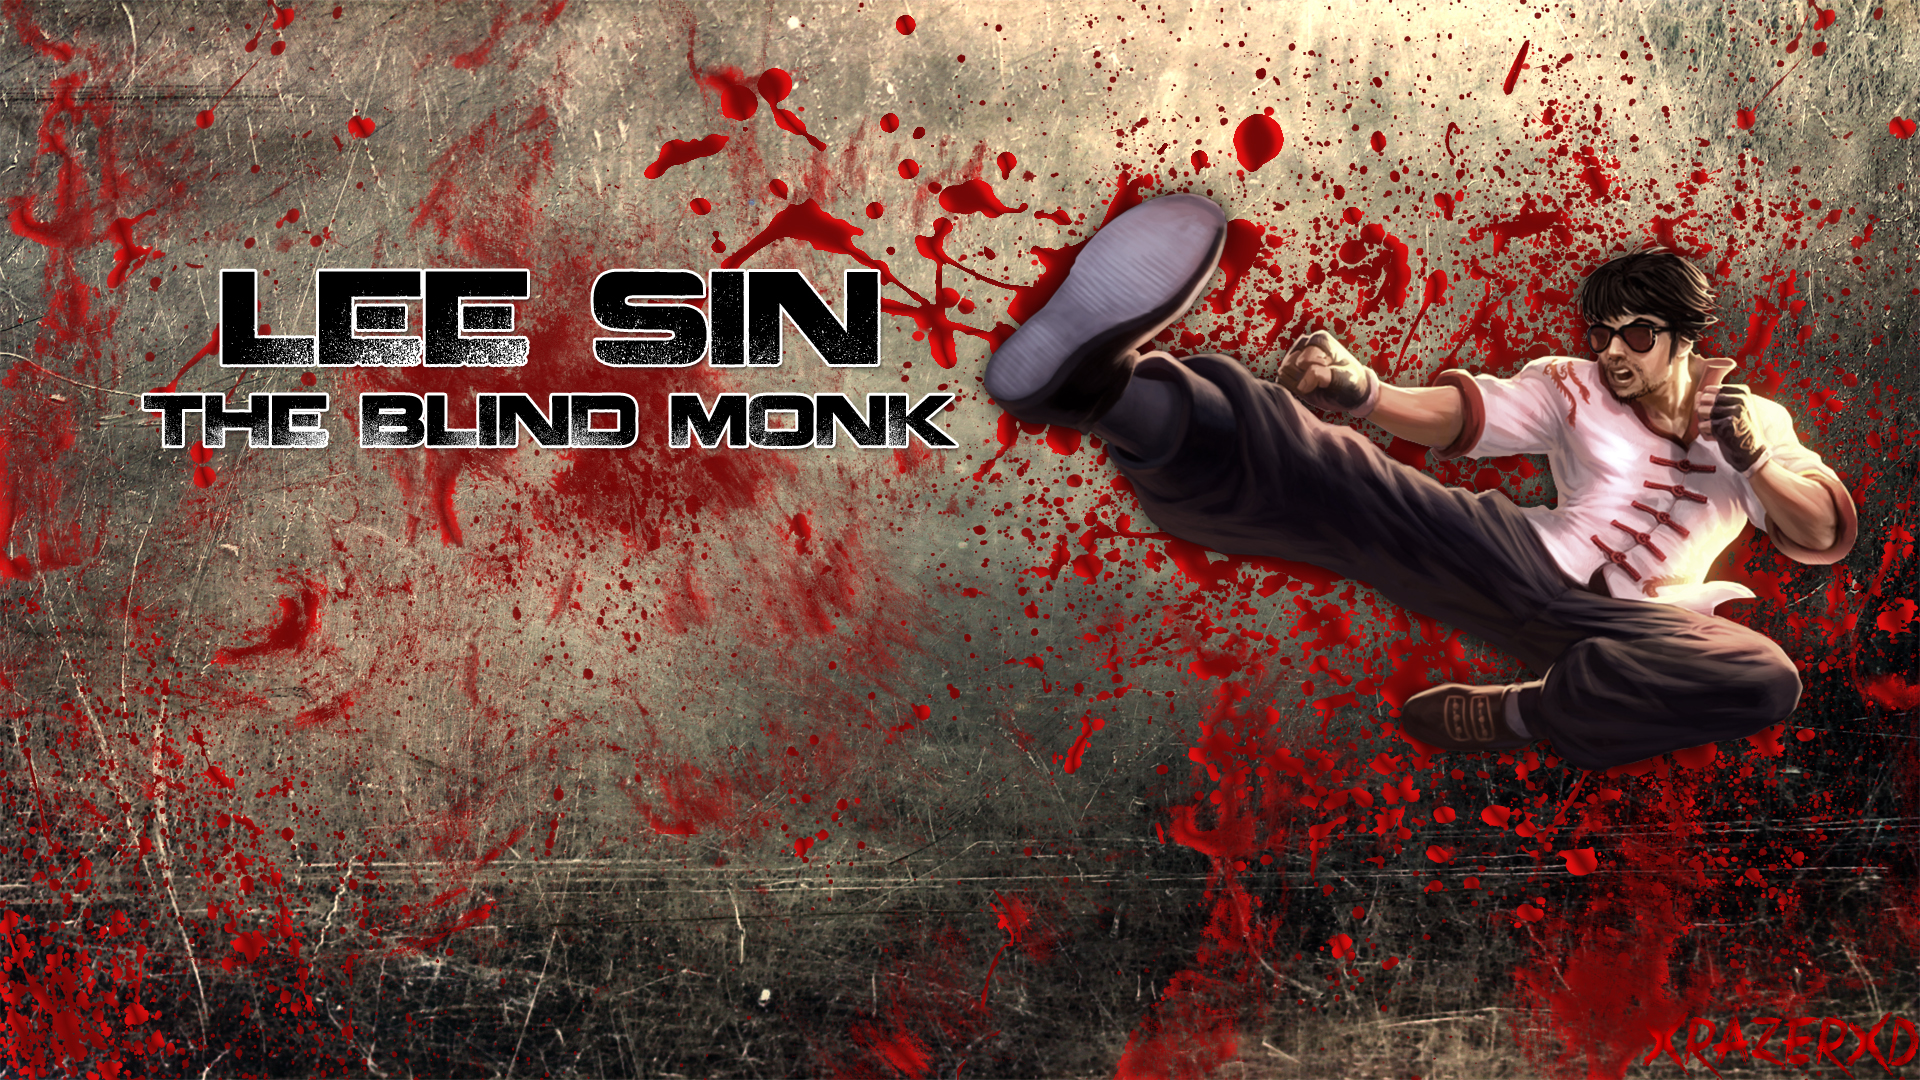 DragonFist Lee Sin wallpaper